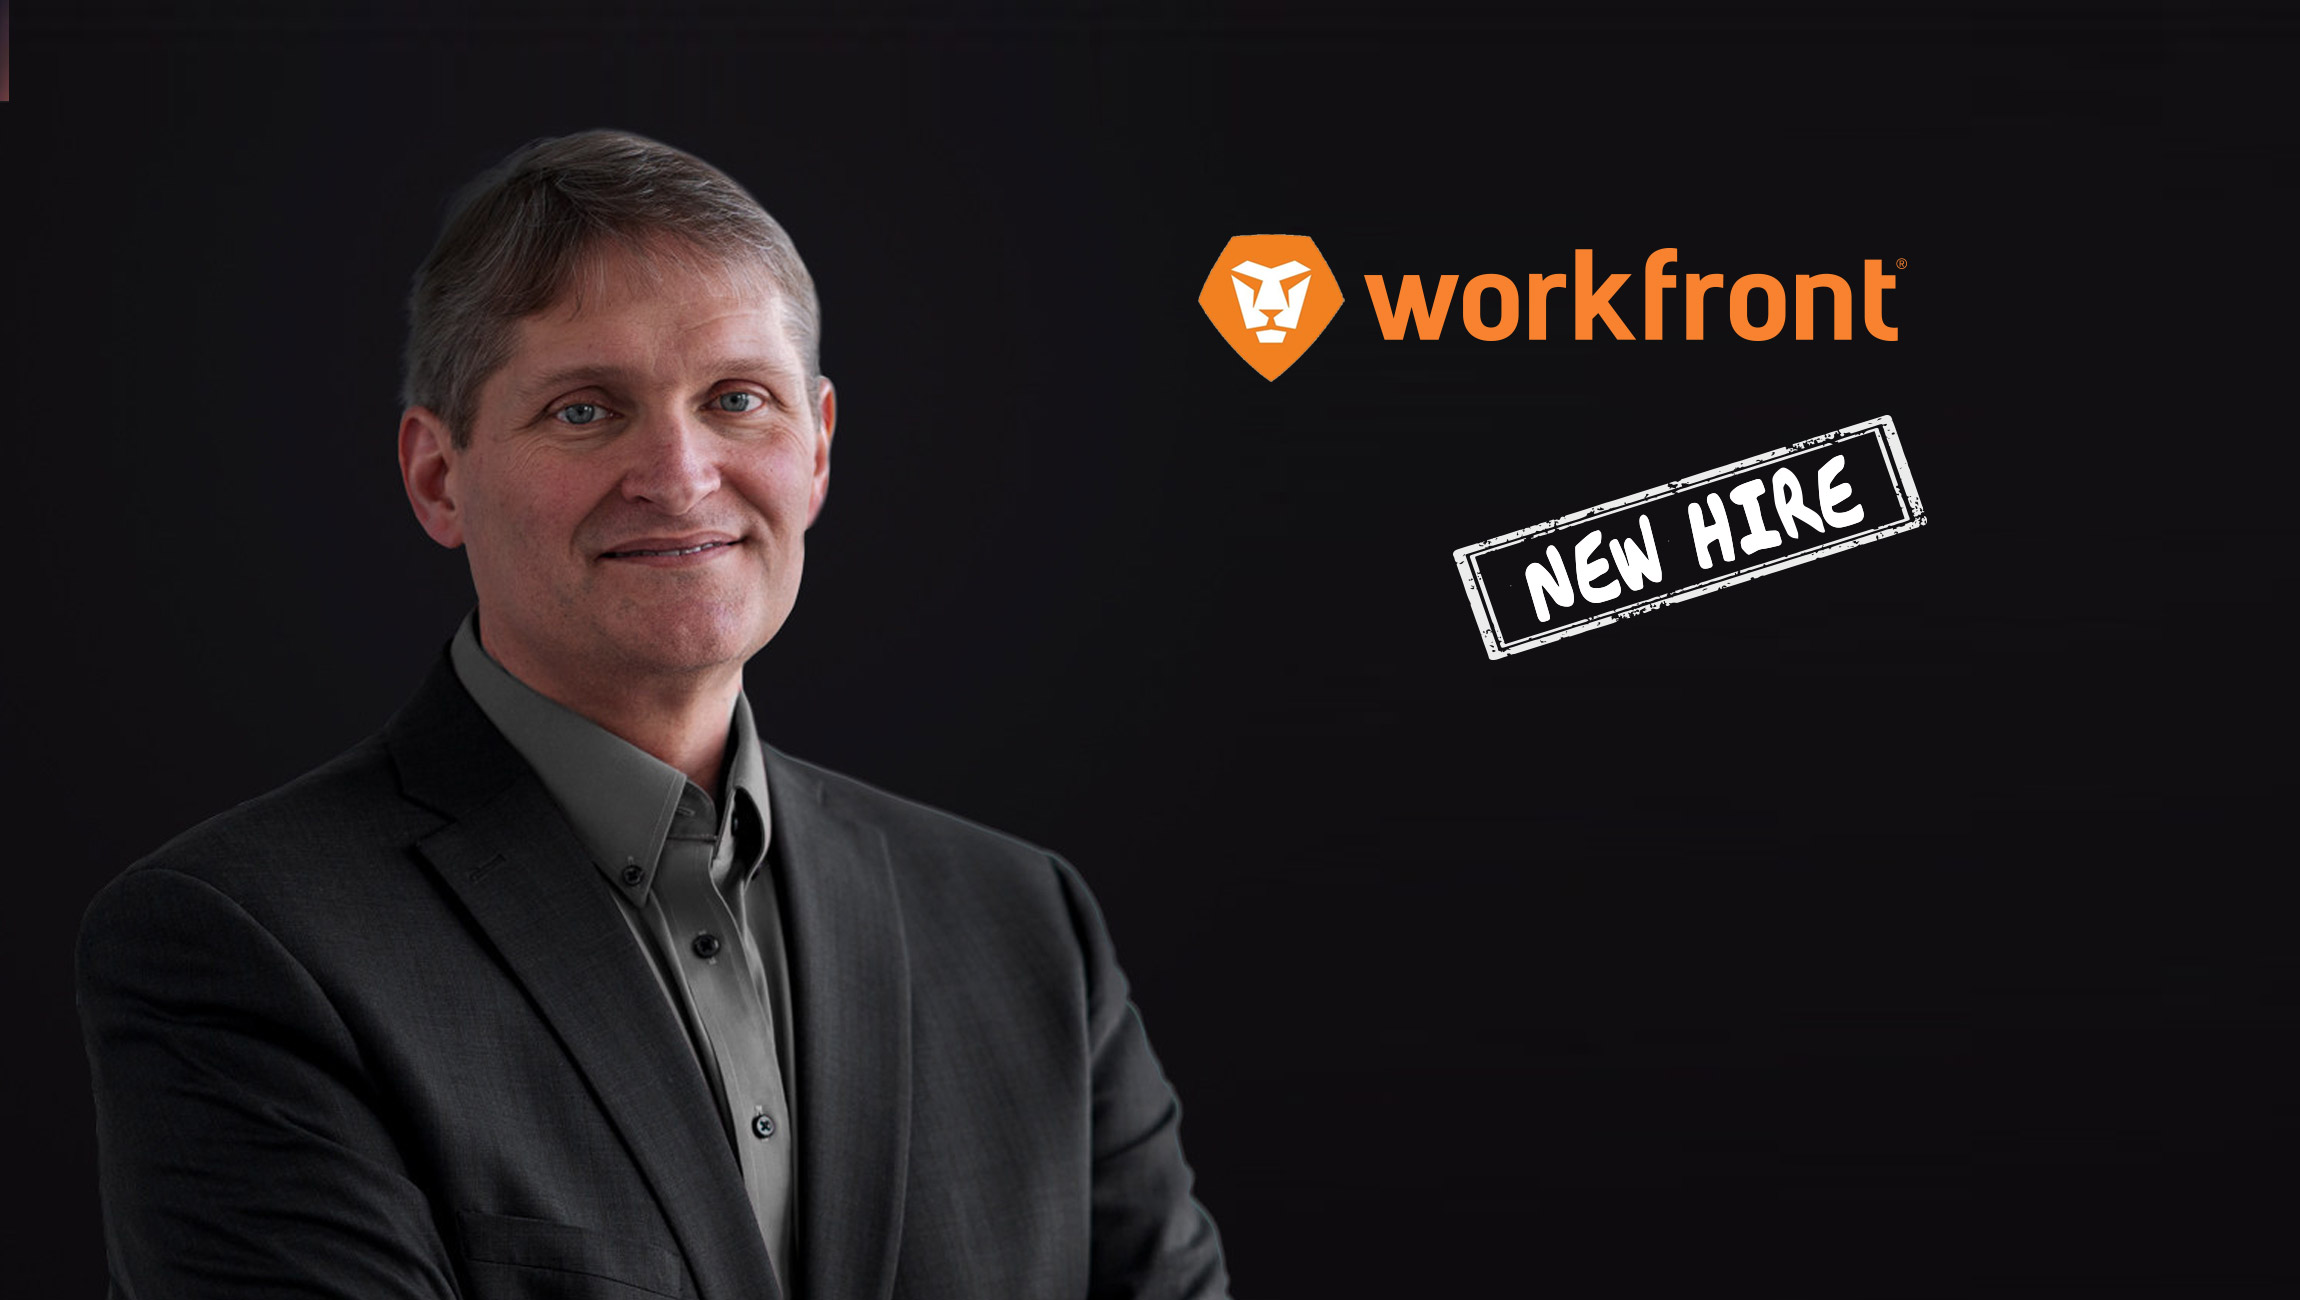 David Burggraaf Joins Workfront as Chief Technology Officer